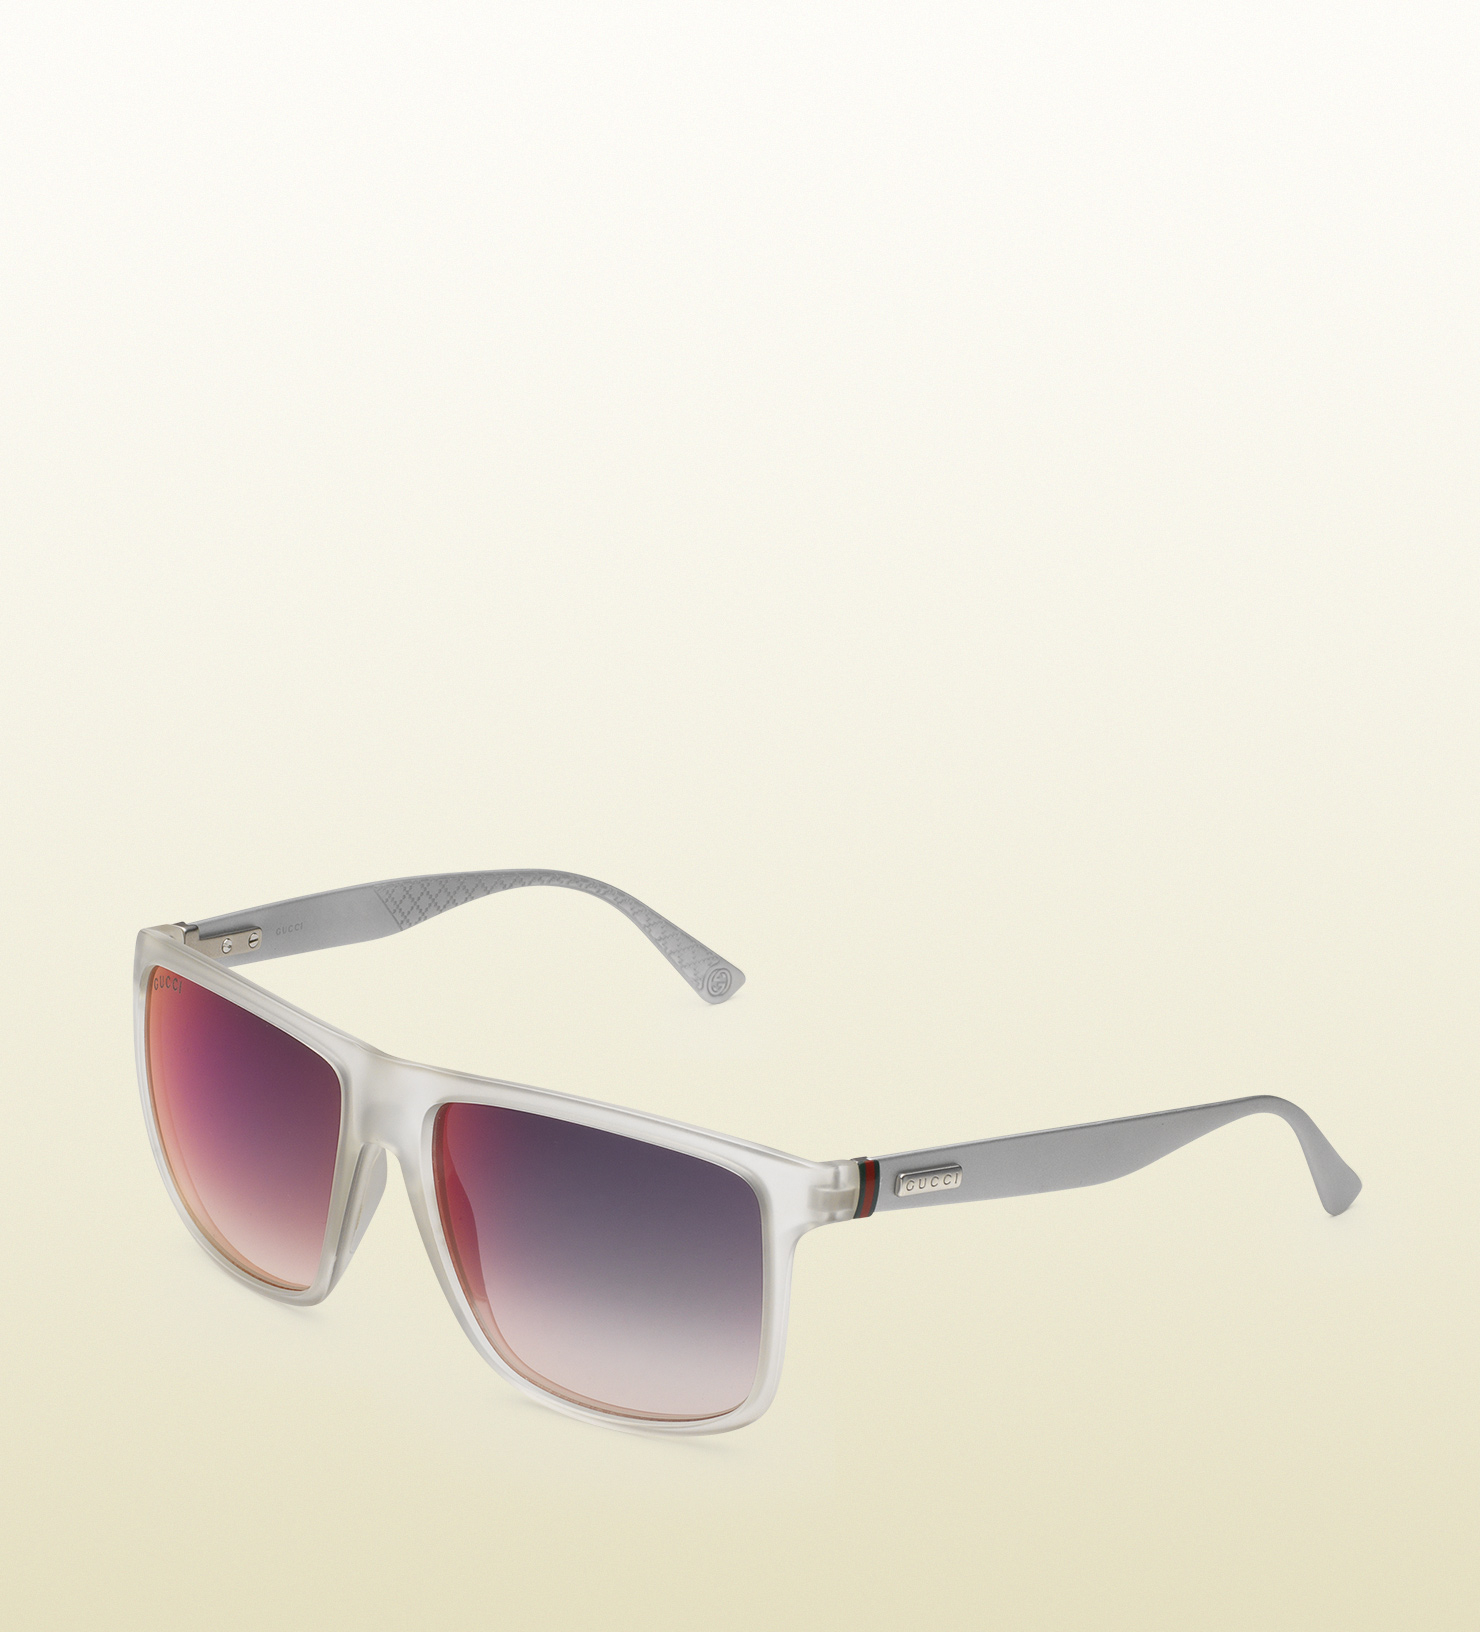 fbe2be969d60e Lyst - Gucci Square-frame Aluminum And Injected Sunglasses in Gray ...